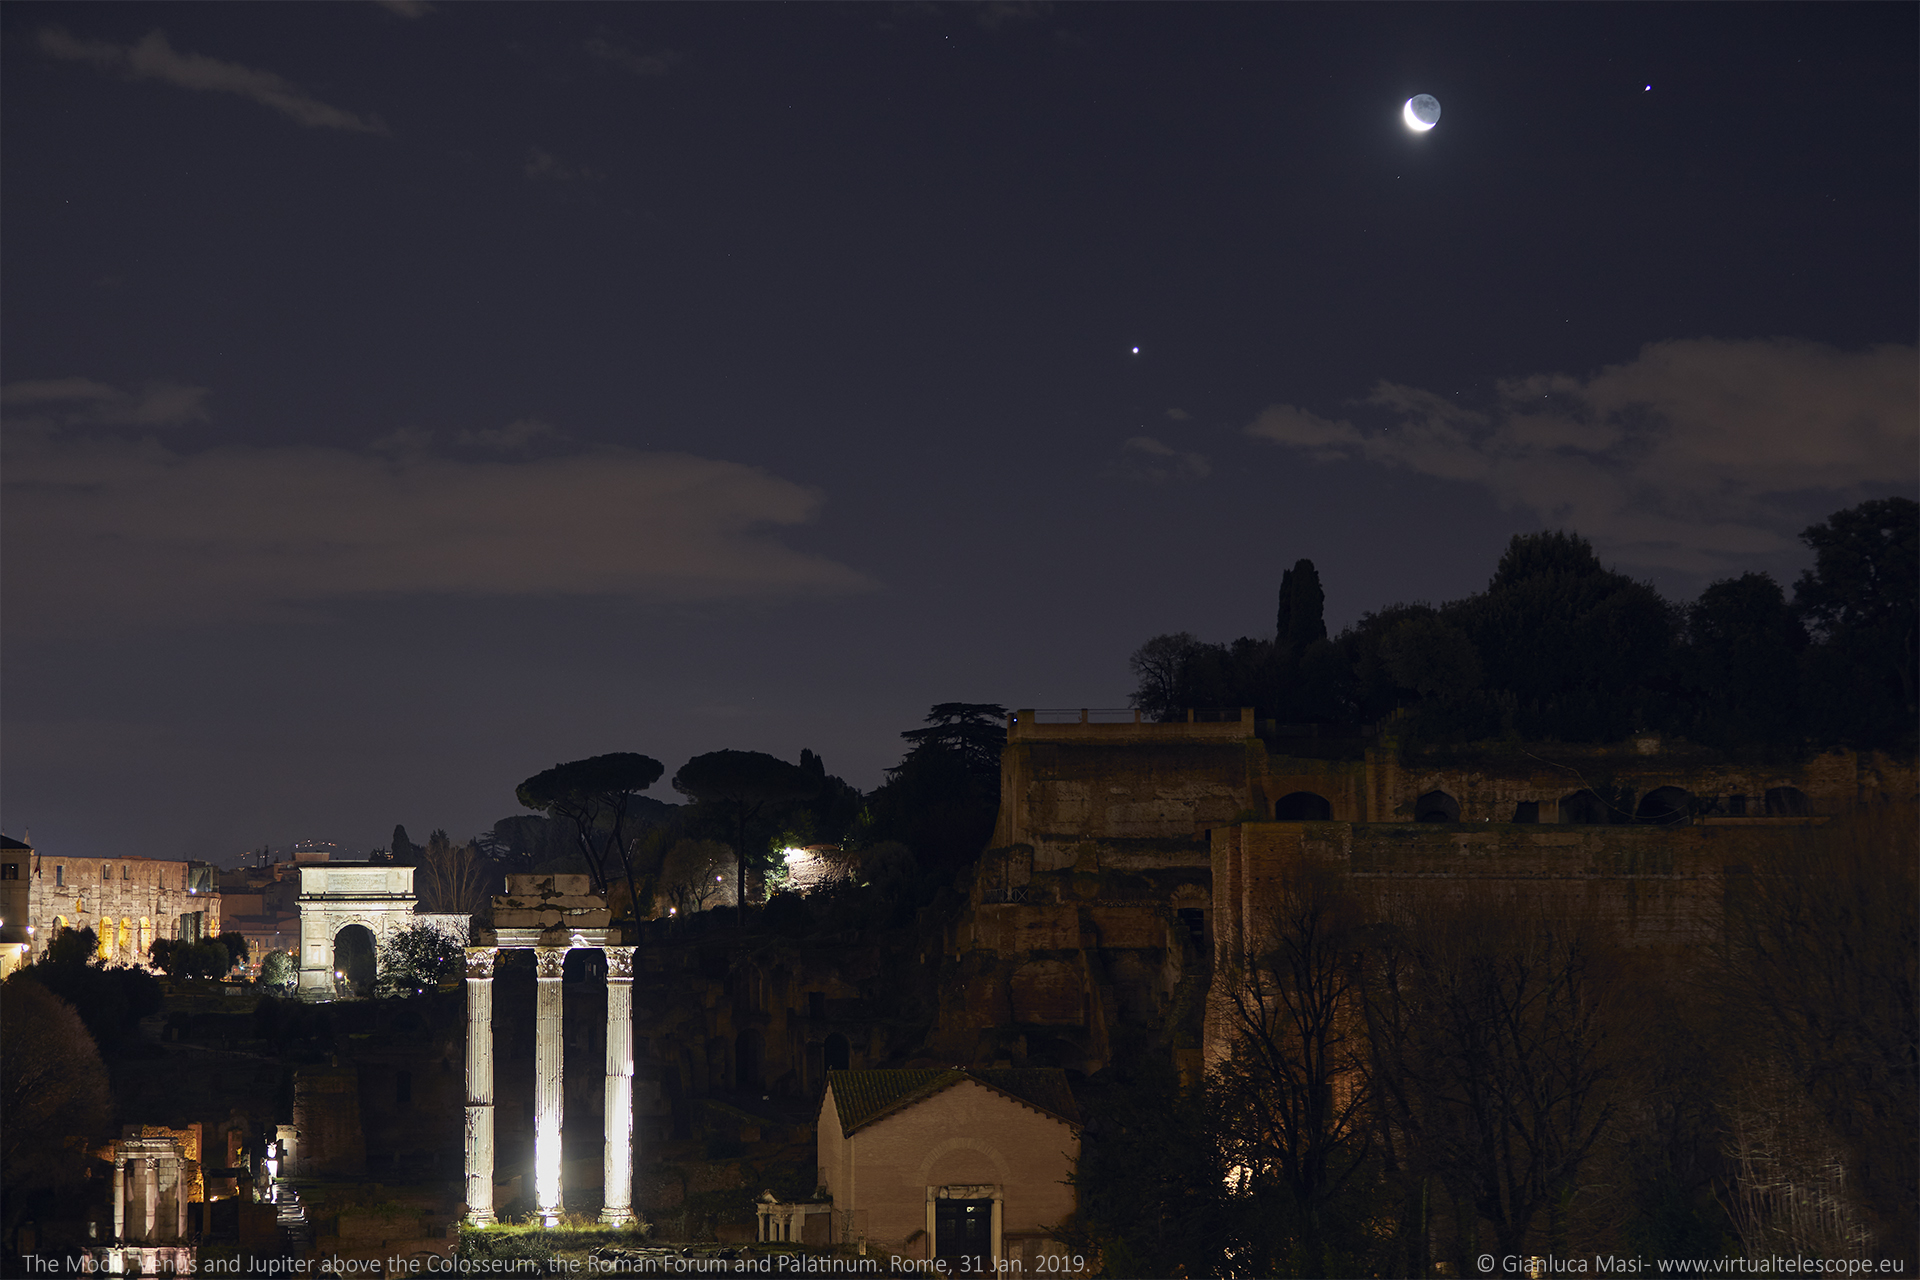 The Moon, Venus and Jupiter put a stunning show above the